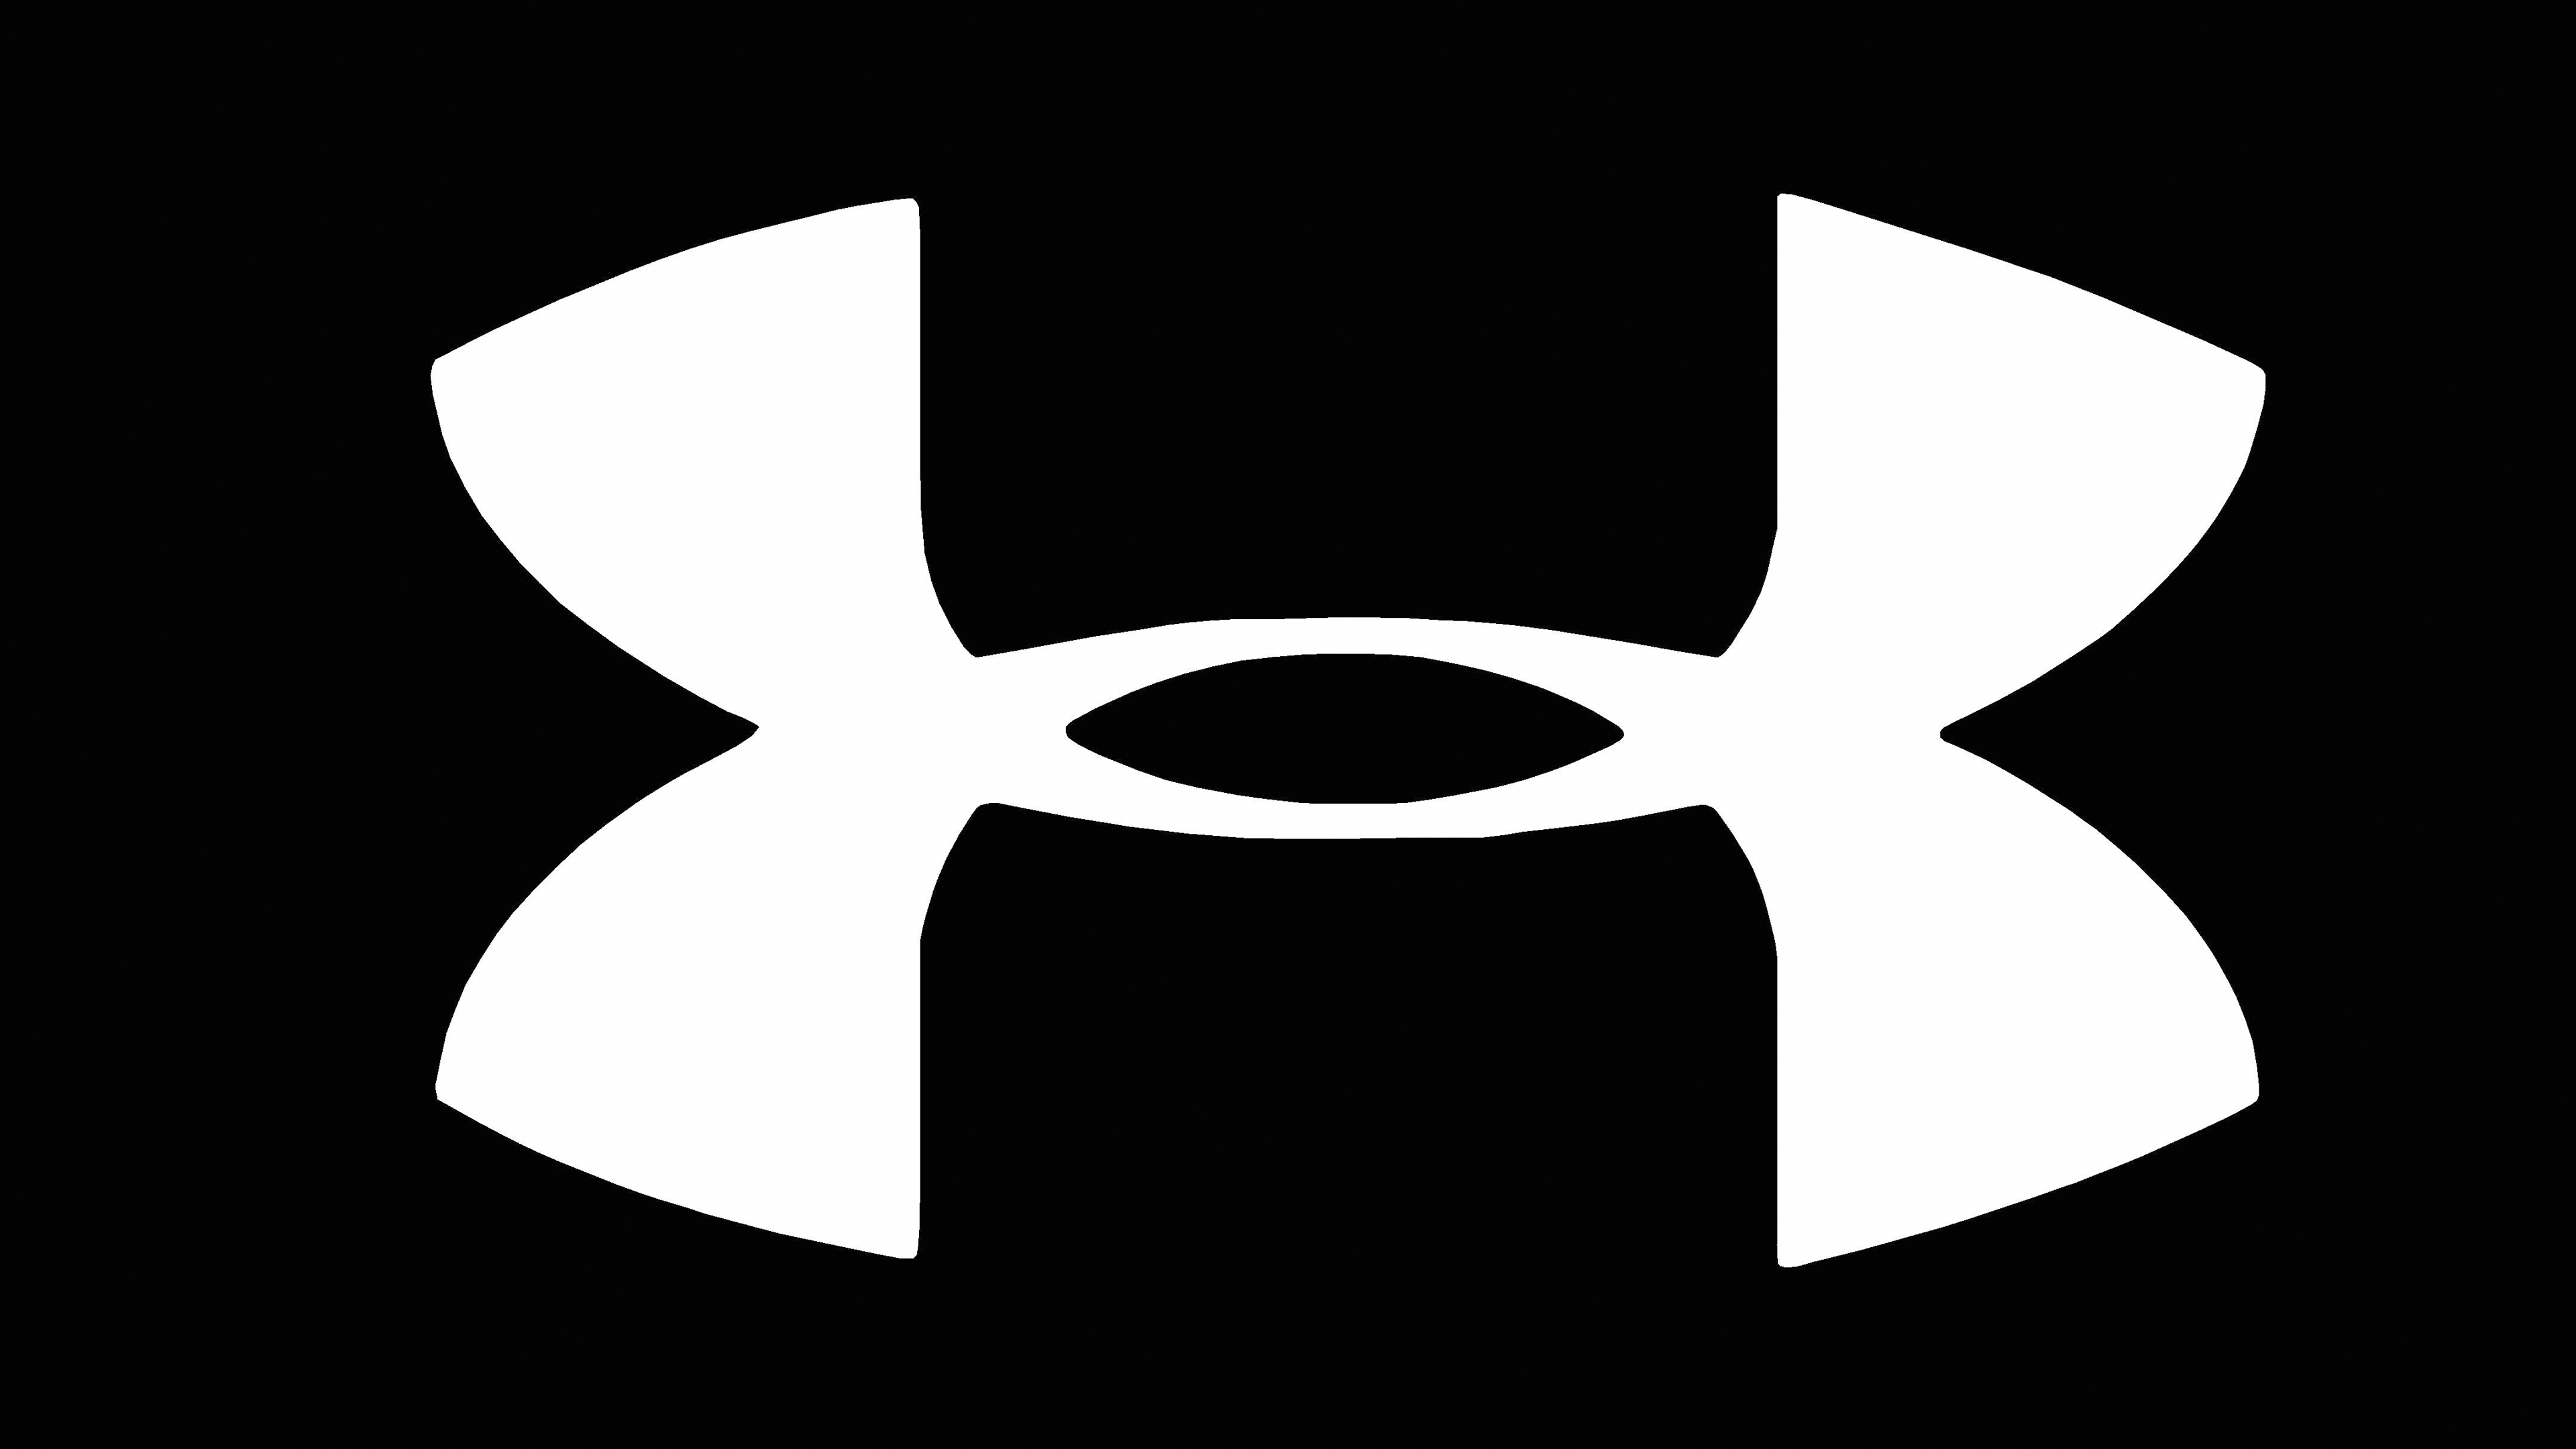 under armour background Kevin a plank (born august 13, 1972) is an american billionaire businessman and philanthropist plank is the founder, ceo and chairman of under armour, a manufacturer of sportswear, footwear and accessories, based in baltimore, maryland.